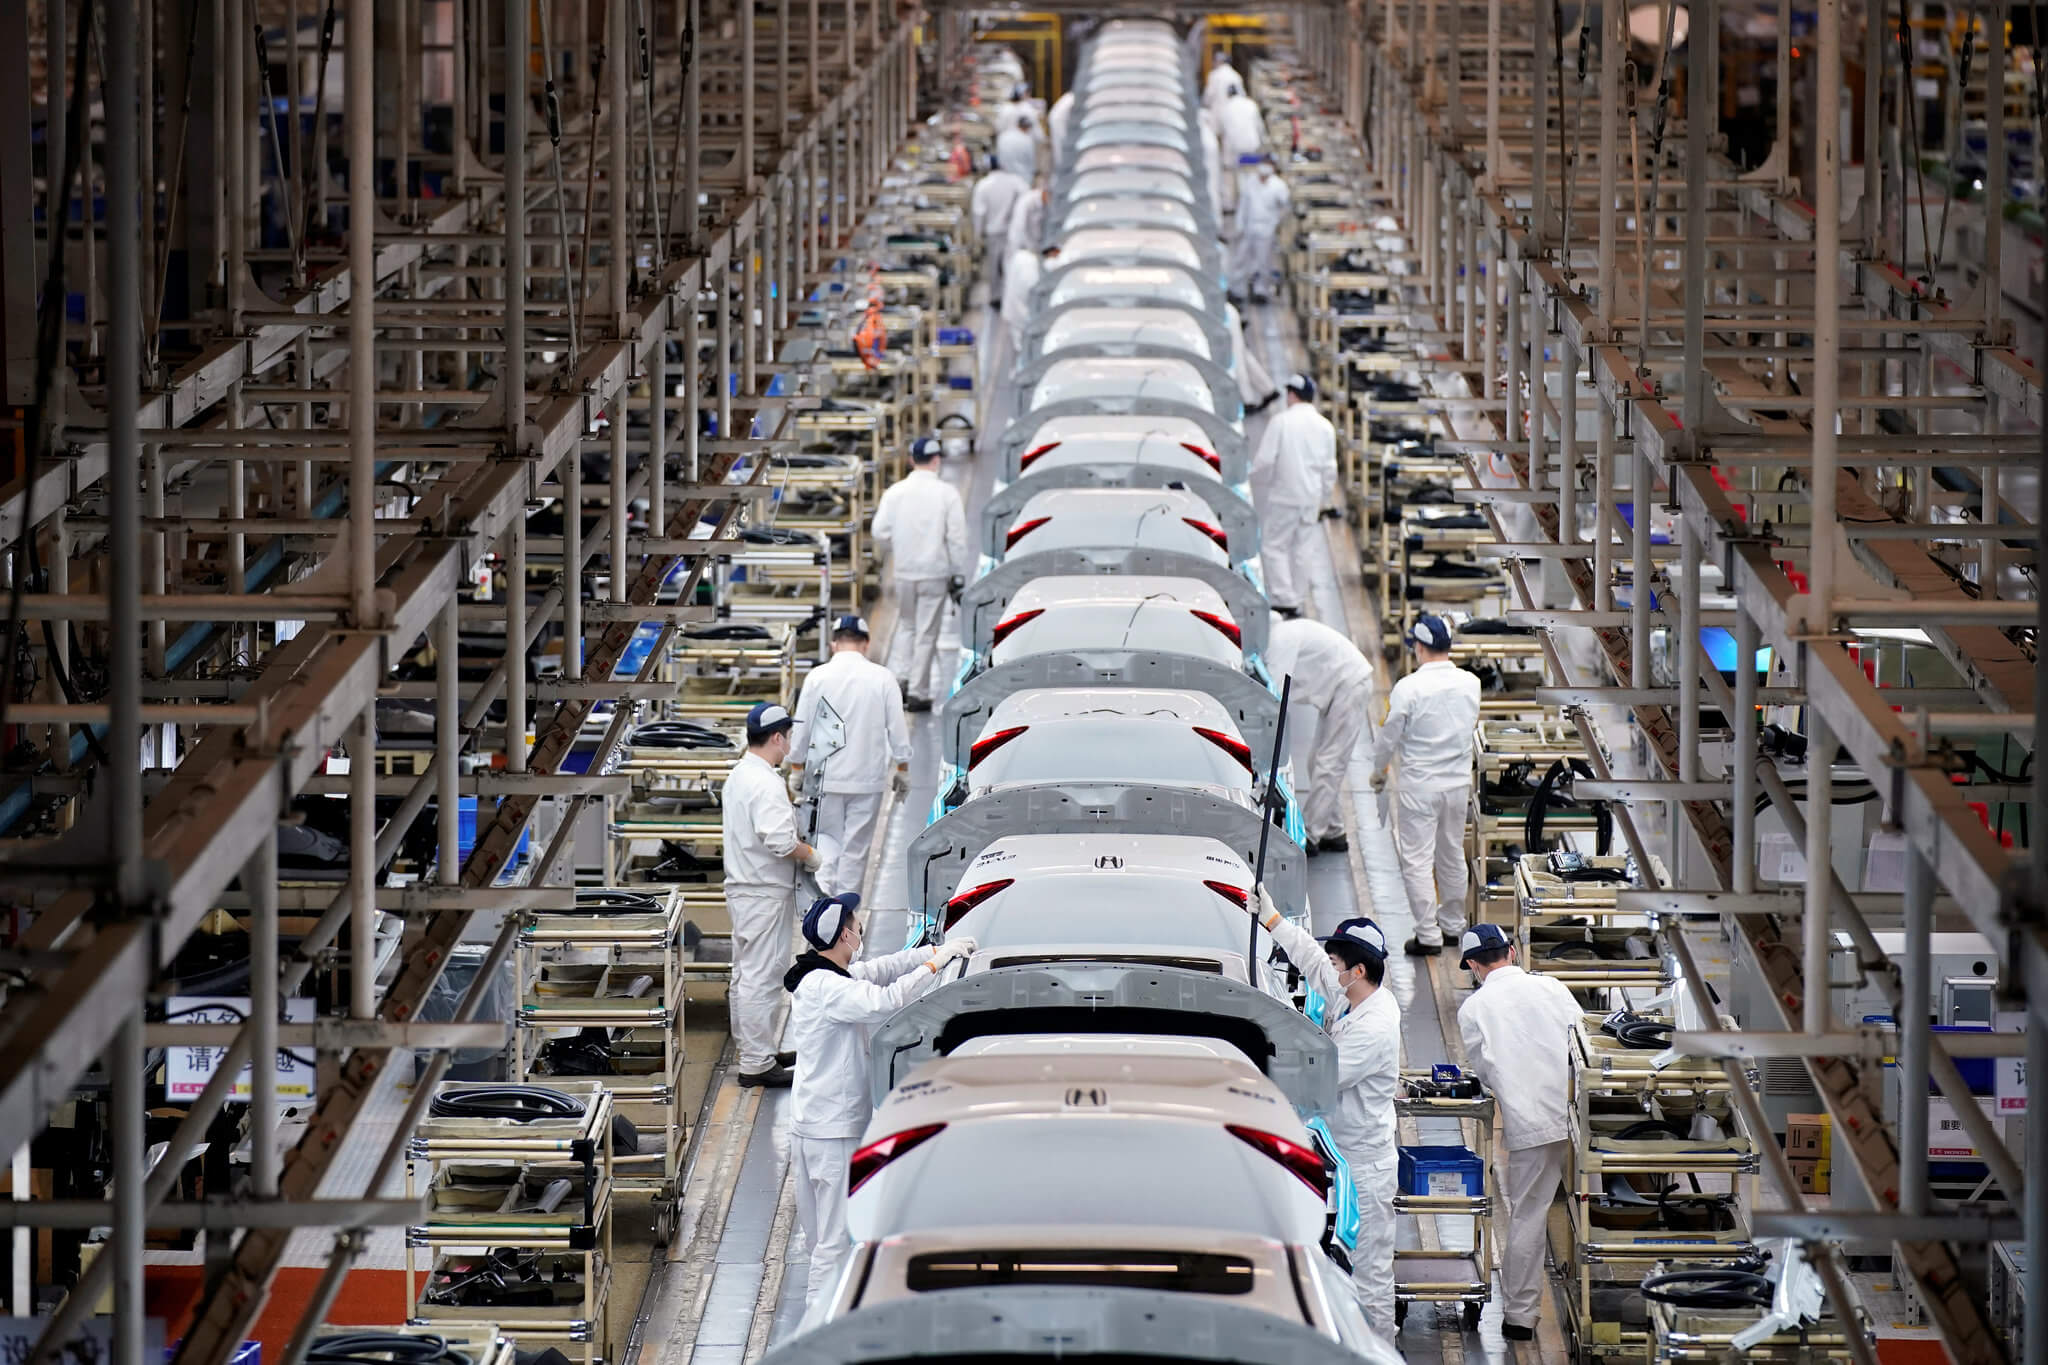 A Chinese Factory Assembling Automobiles